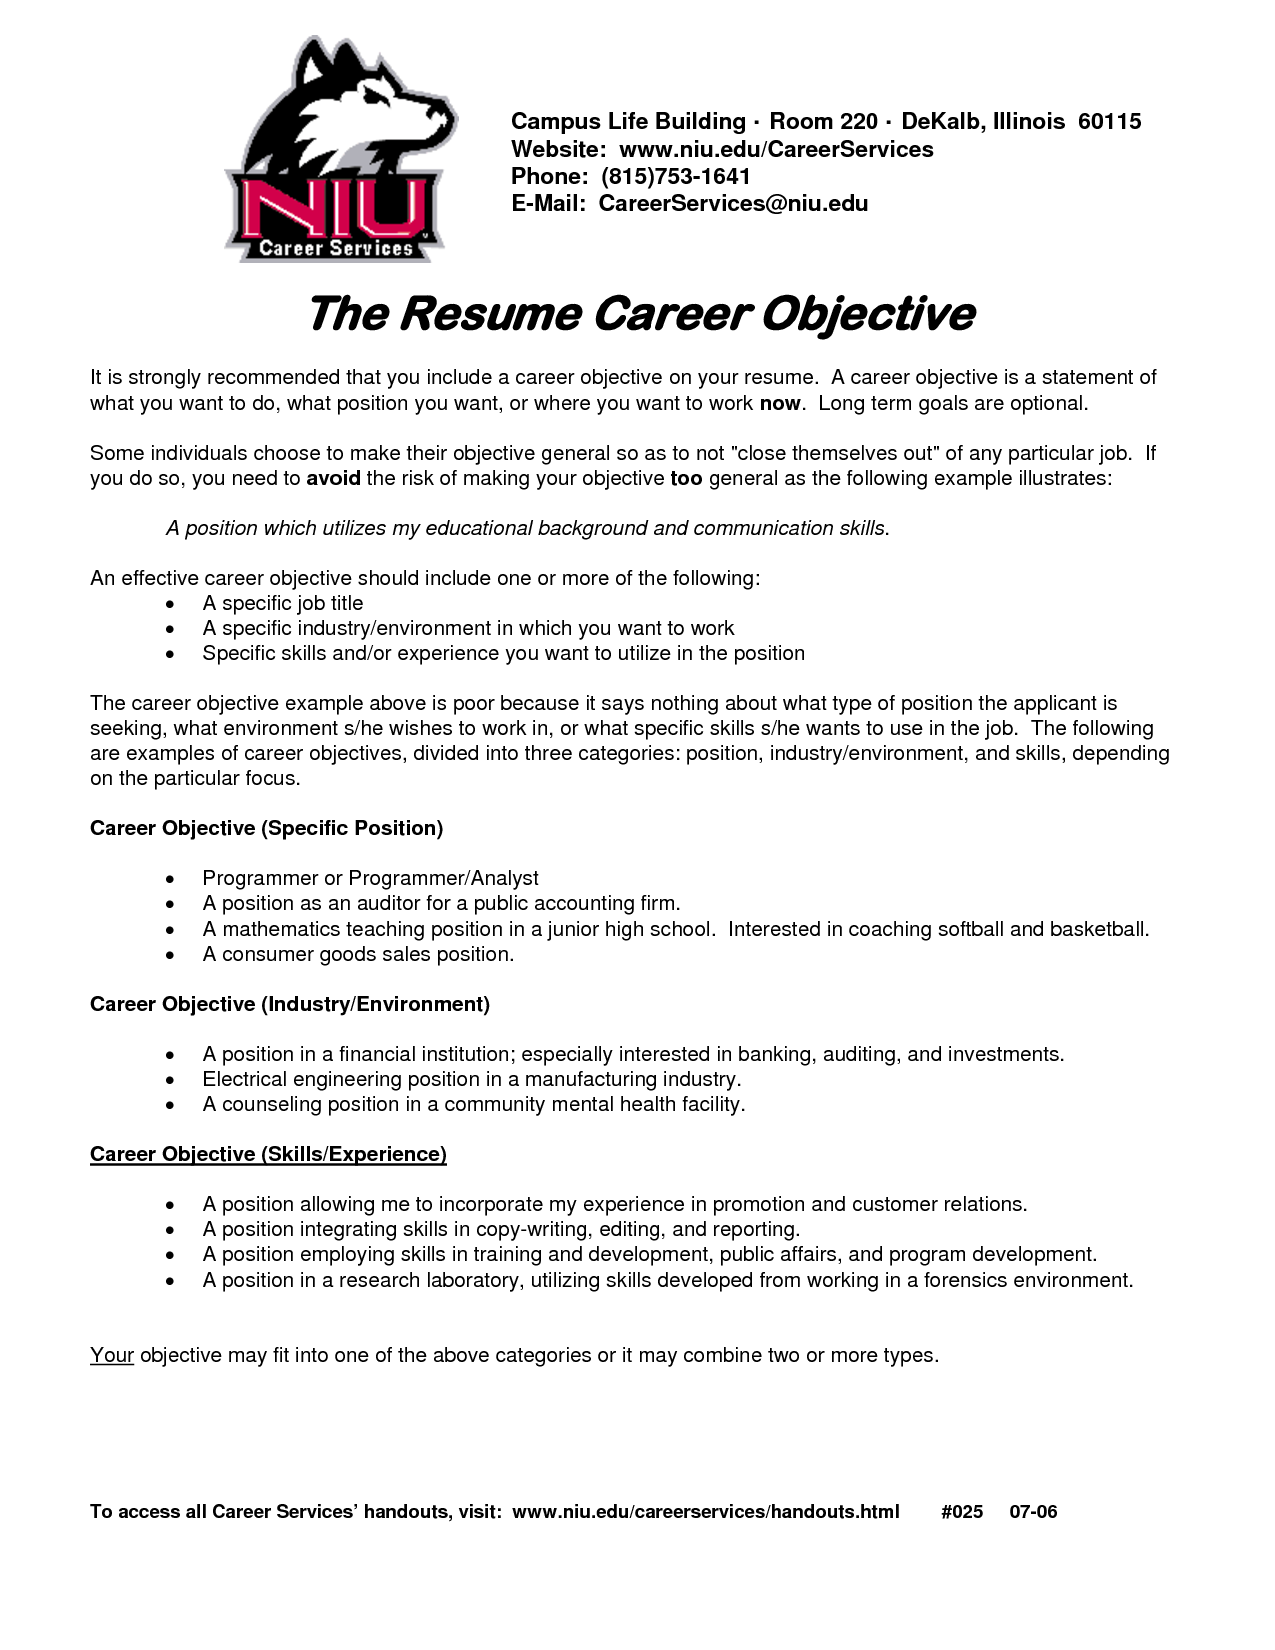 Objectives In Resume Httpswwwgooglesearchqobjective Resume  Resume